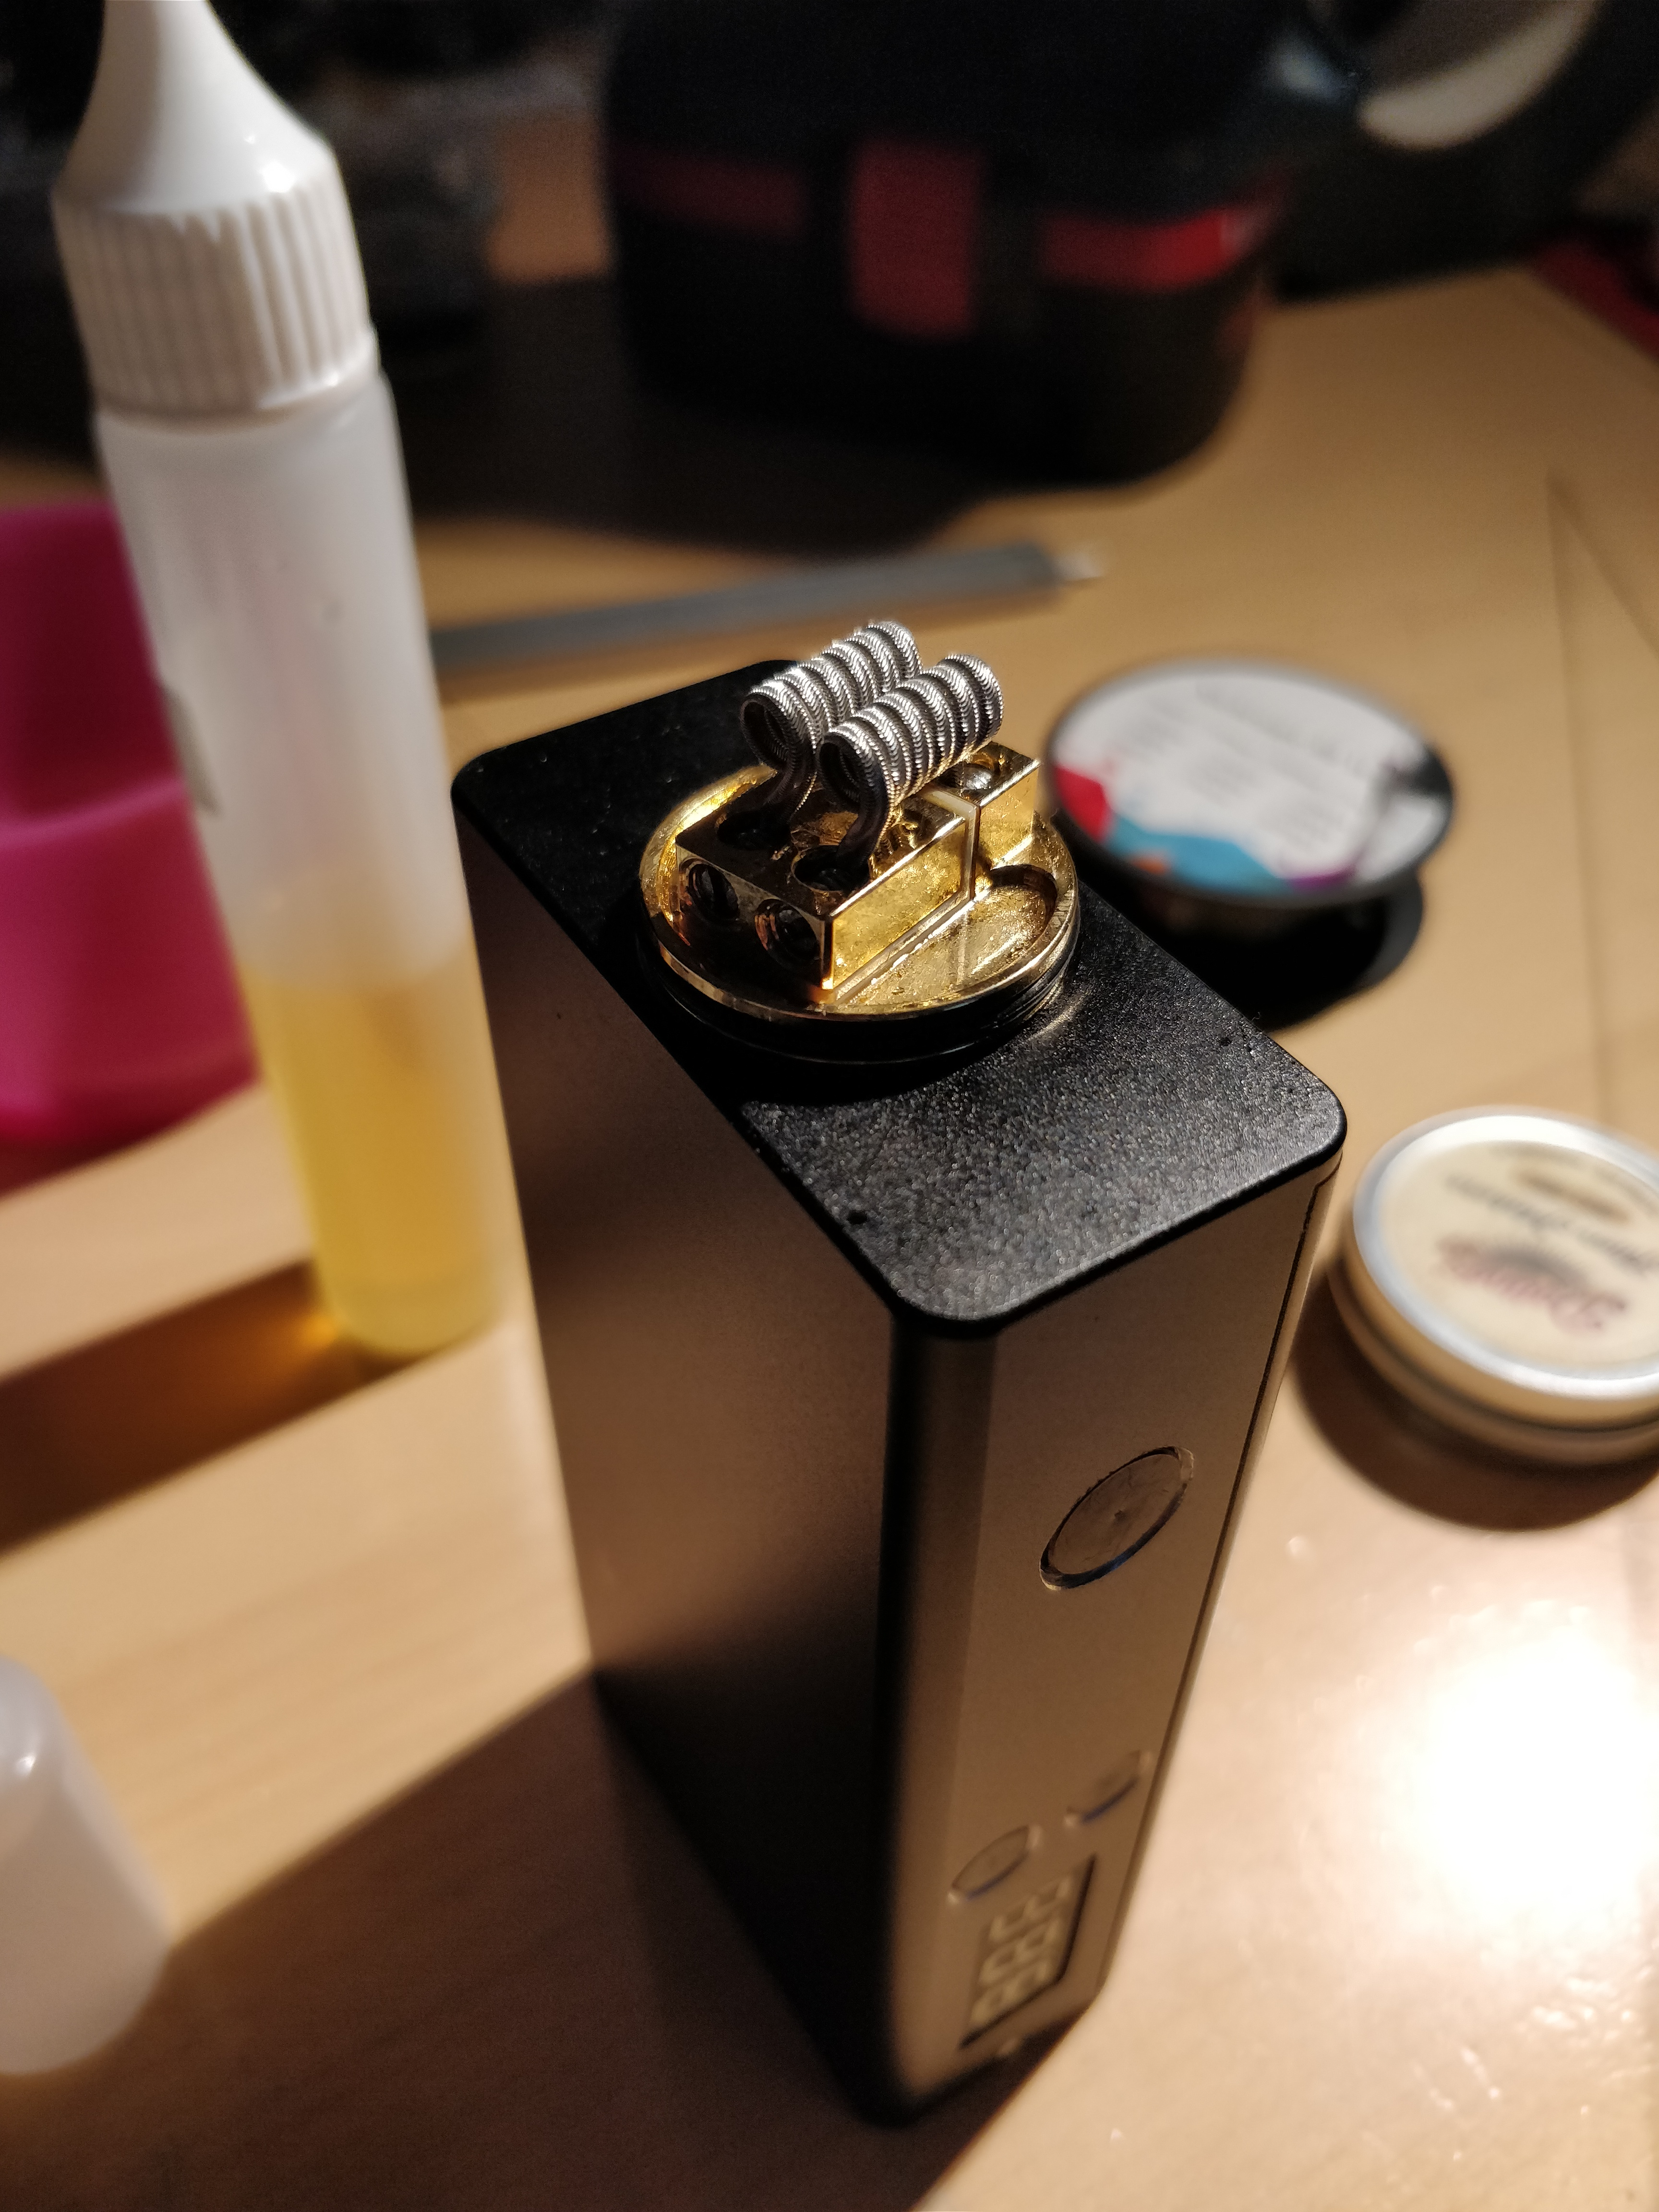 Want to build a NLPWM mod   | Page 2 | Vaping Forum - Planet of the